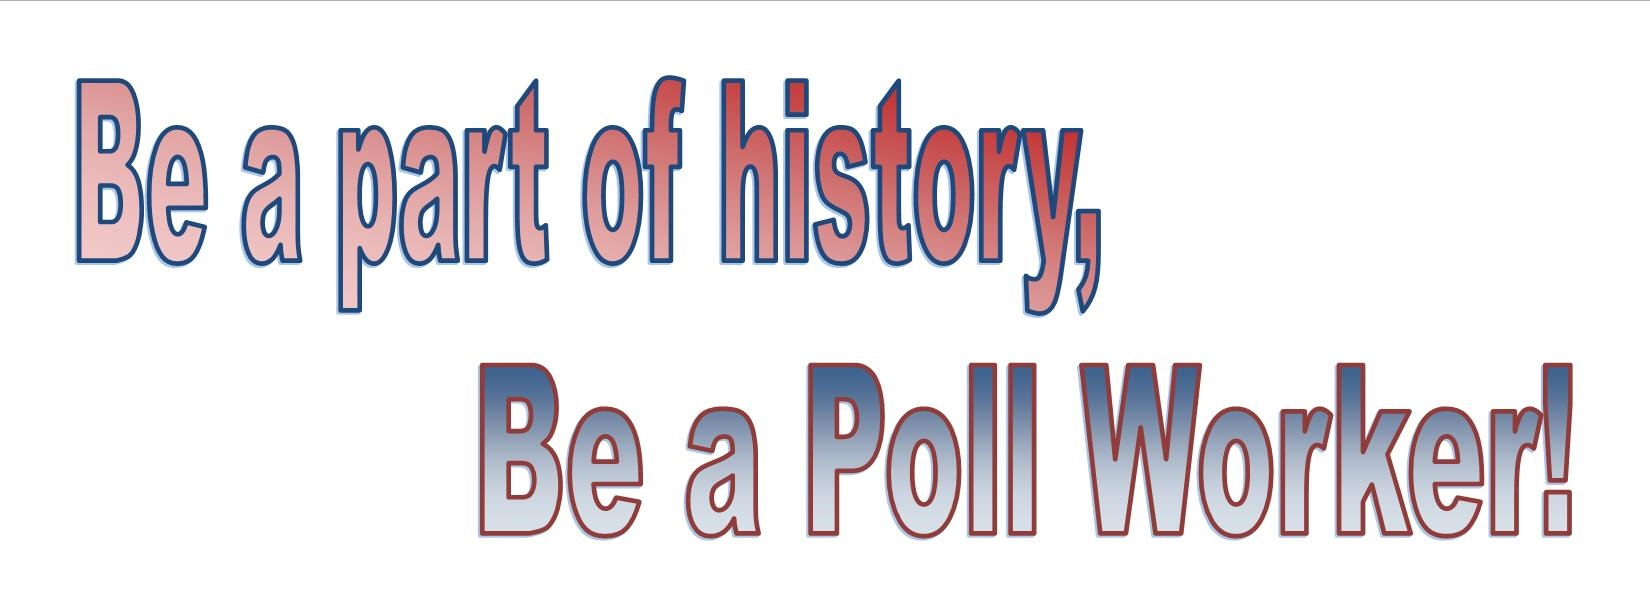 be a part of history, be a poll worker